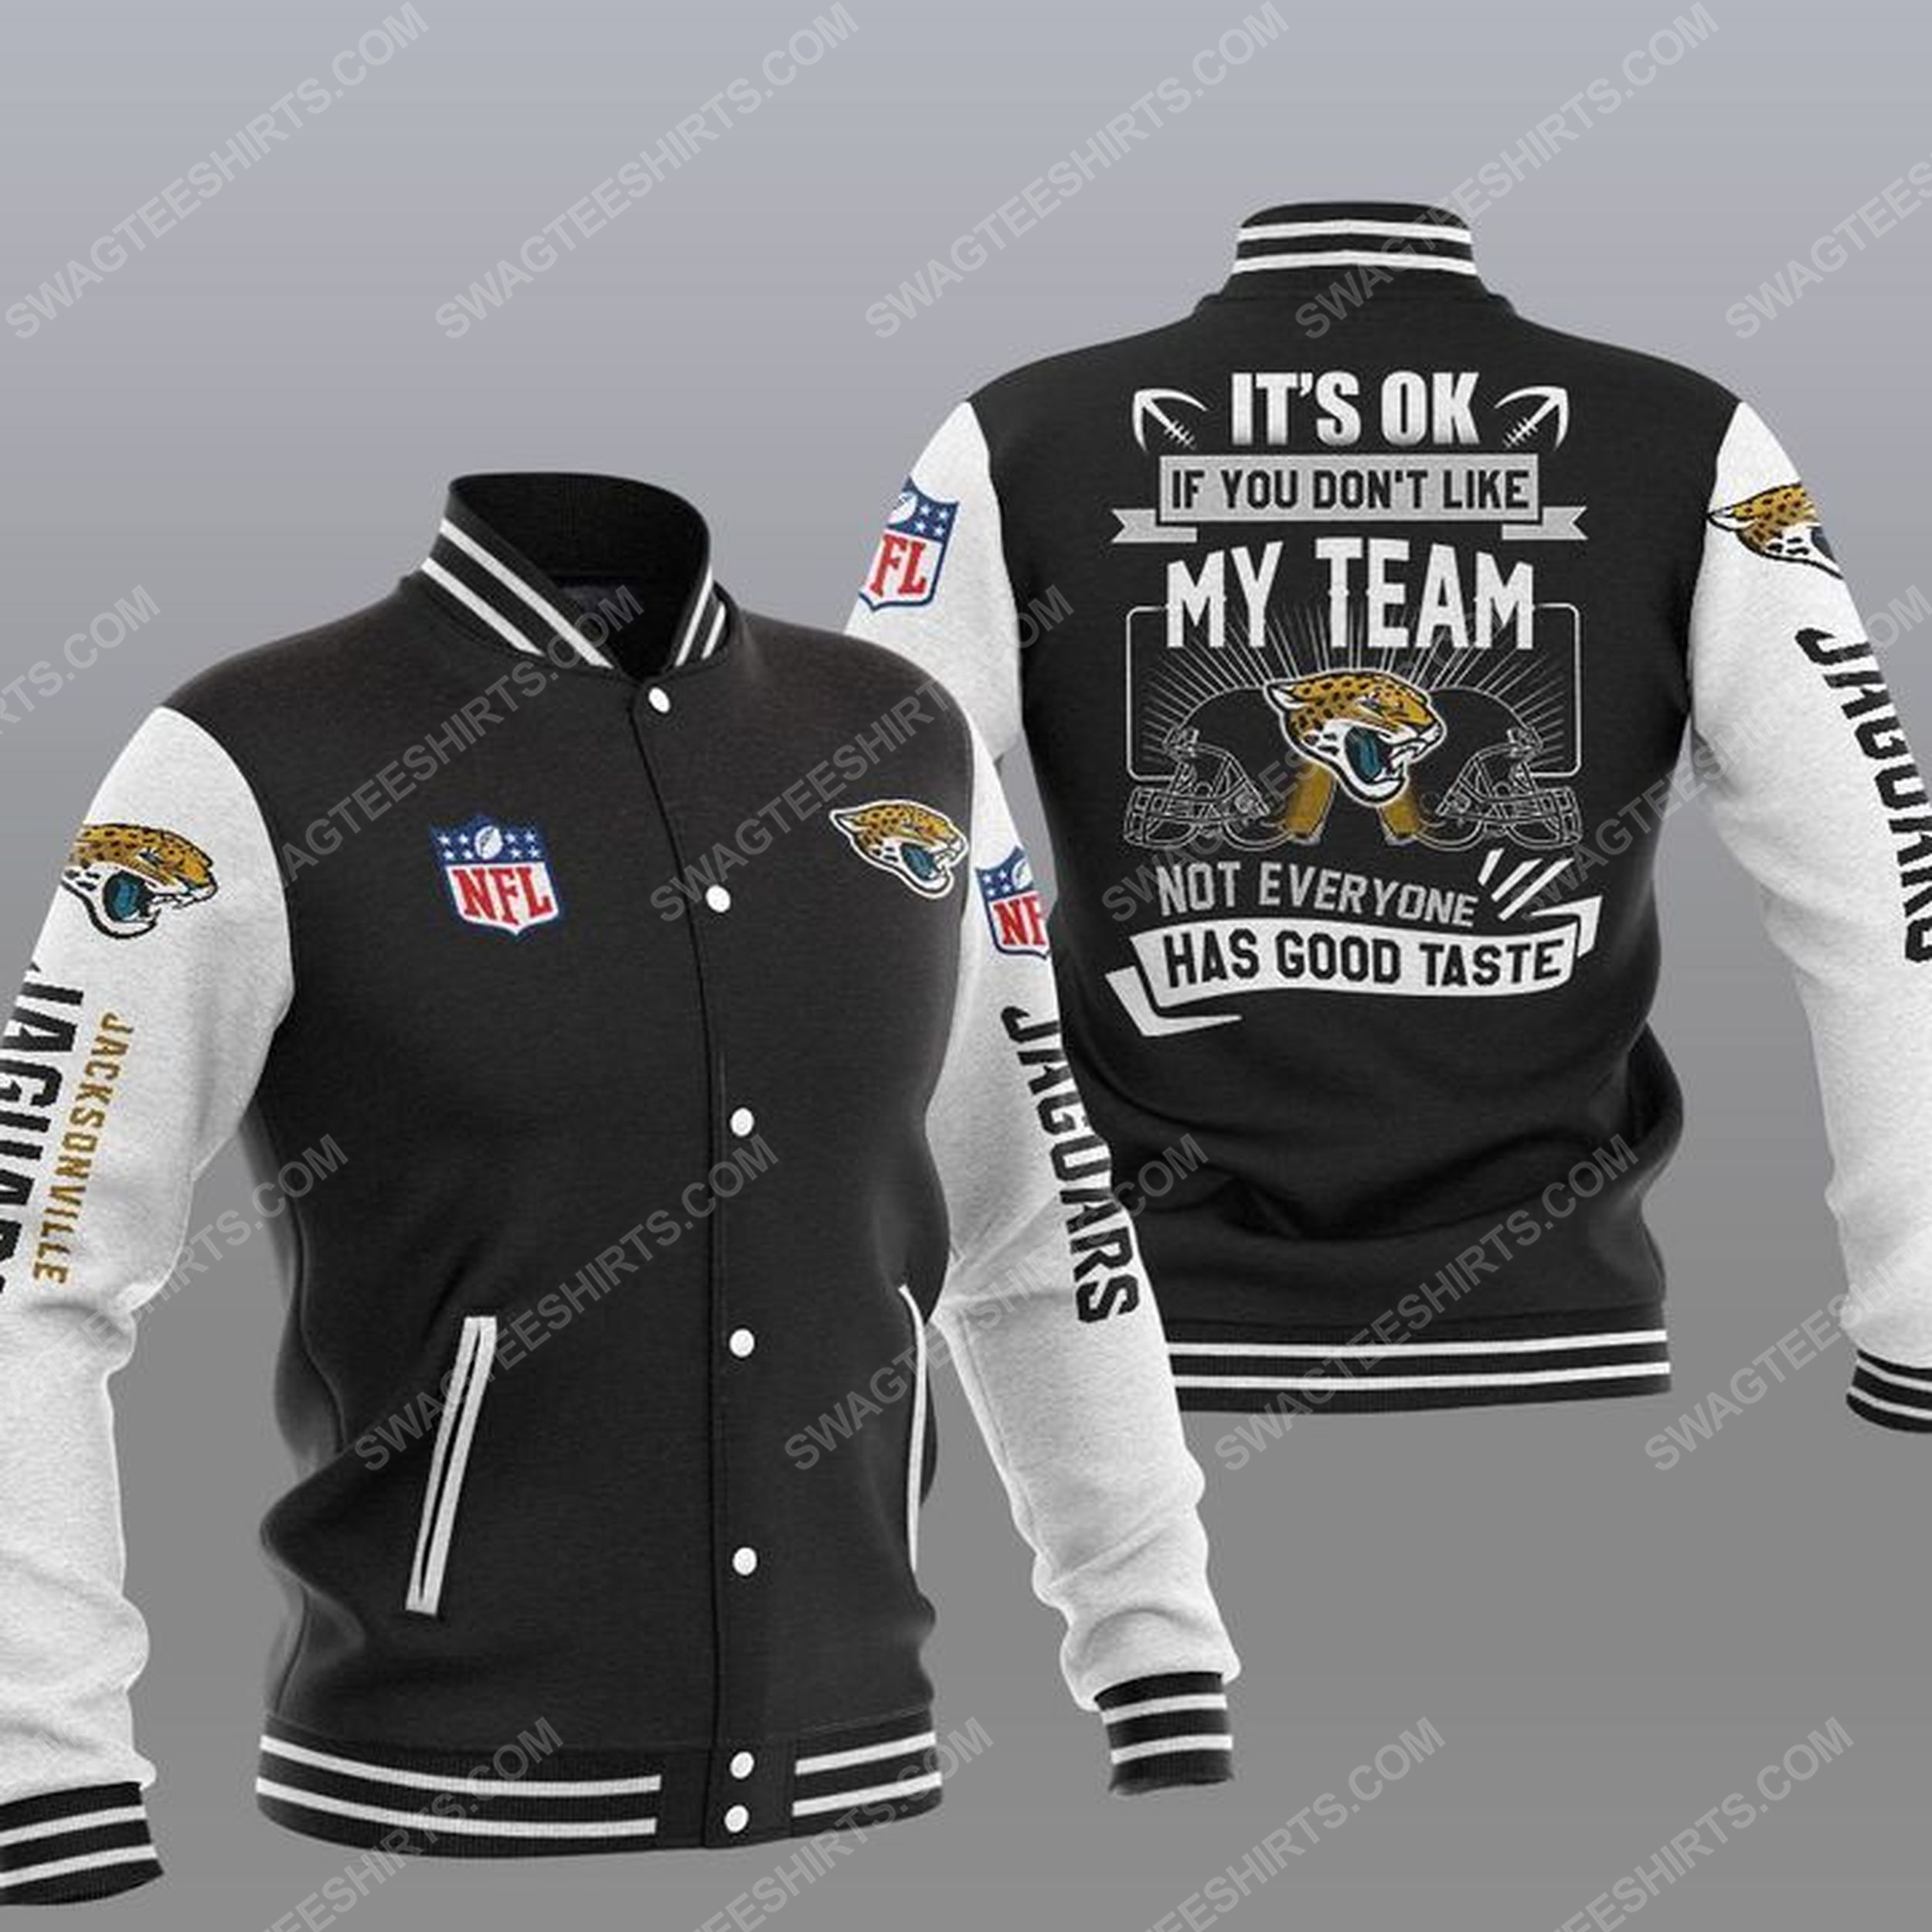 It's ok if you don't like my team jacksonville jaguars all over print jacket